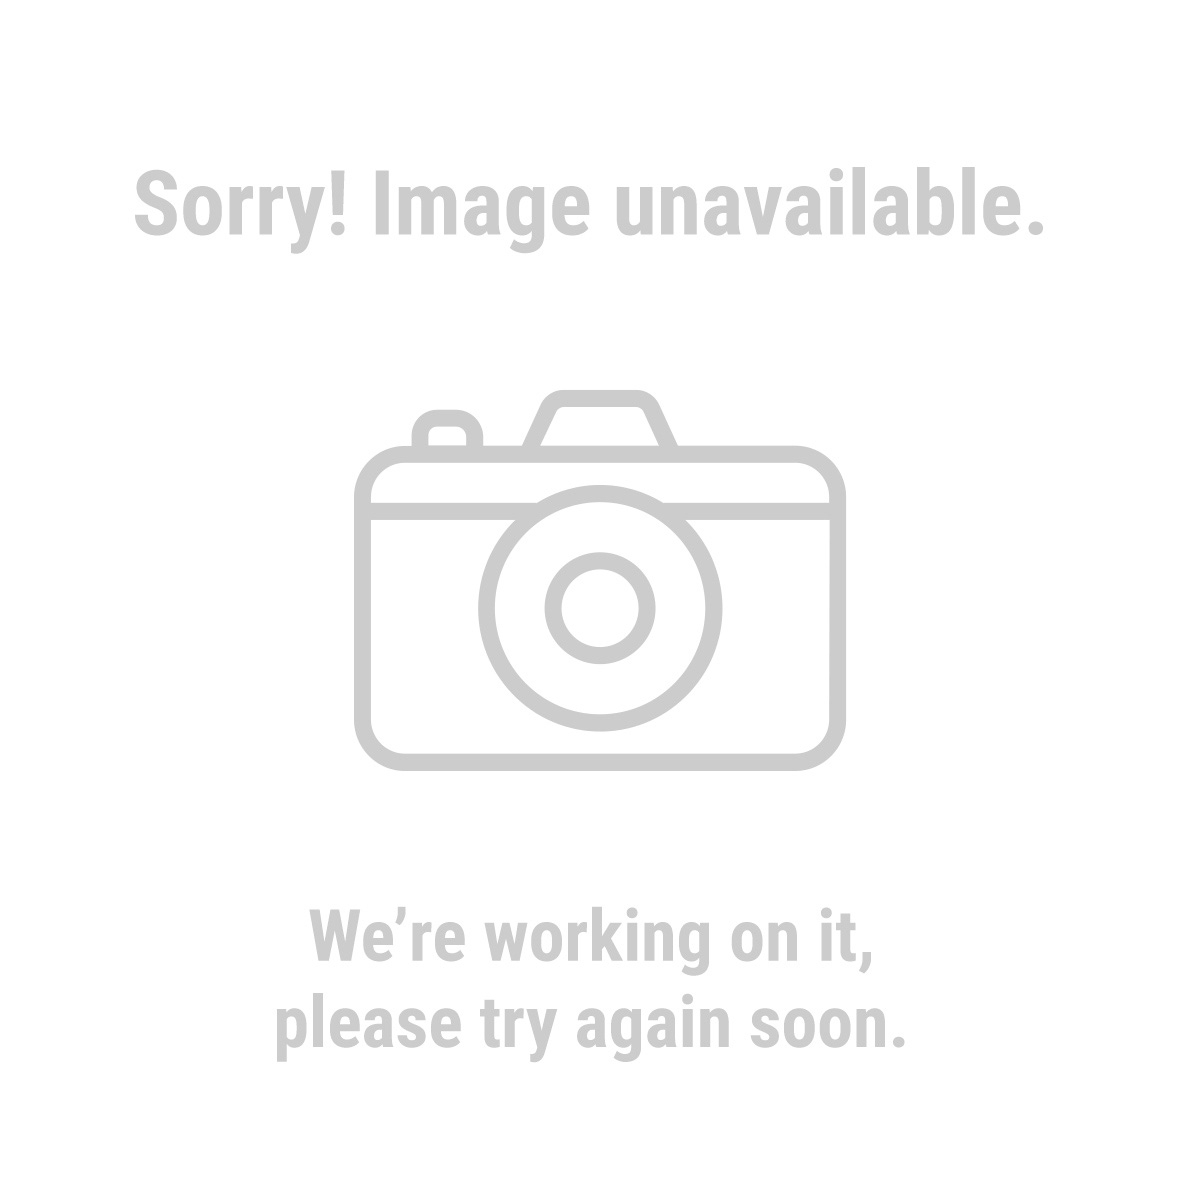 Ship to Shore 99598 Electric Meat Grinder